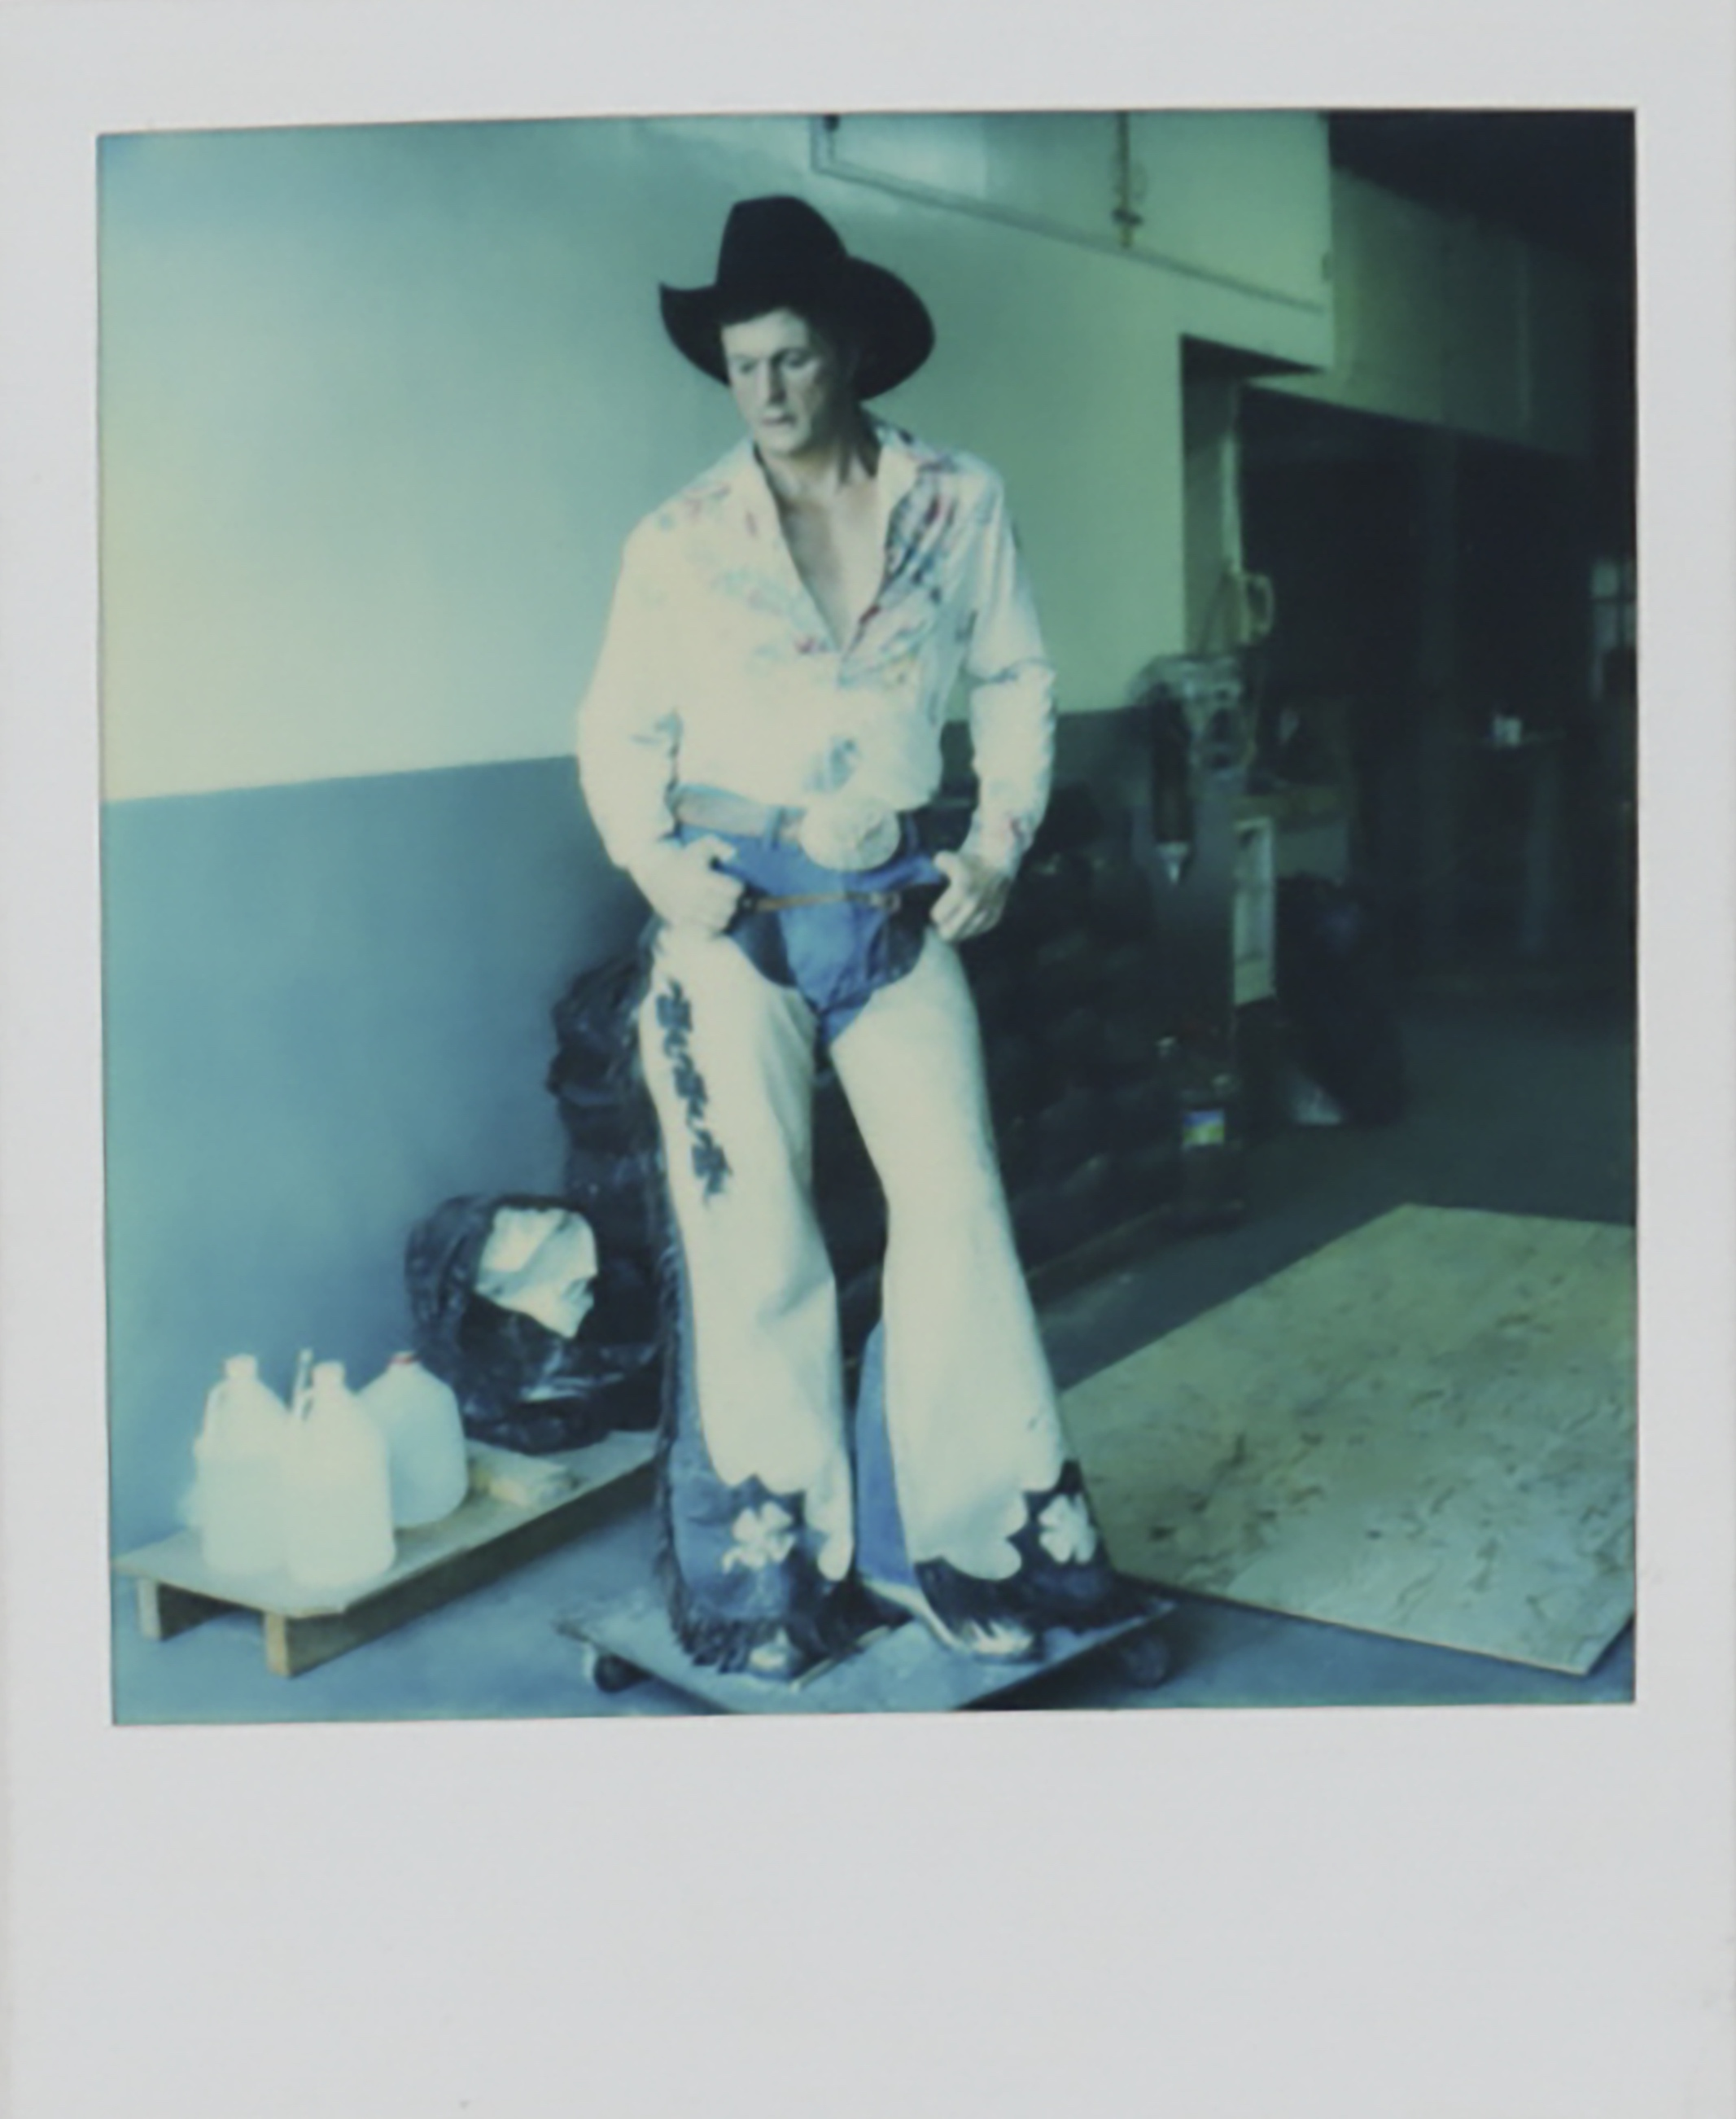 duane hason essay An analysis of duane hanson and his works pages 1  duanne hanson, duanne hanson works, a traditional model for sculptors  sign up to view the complete essay.